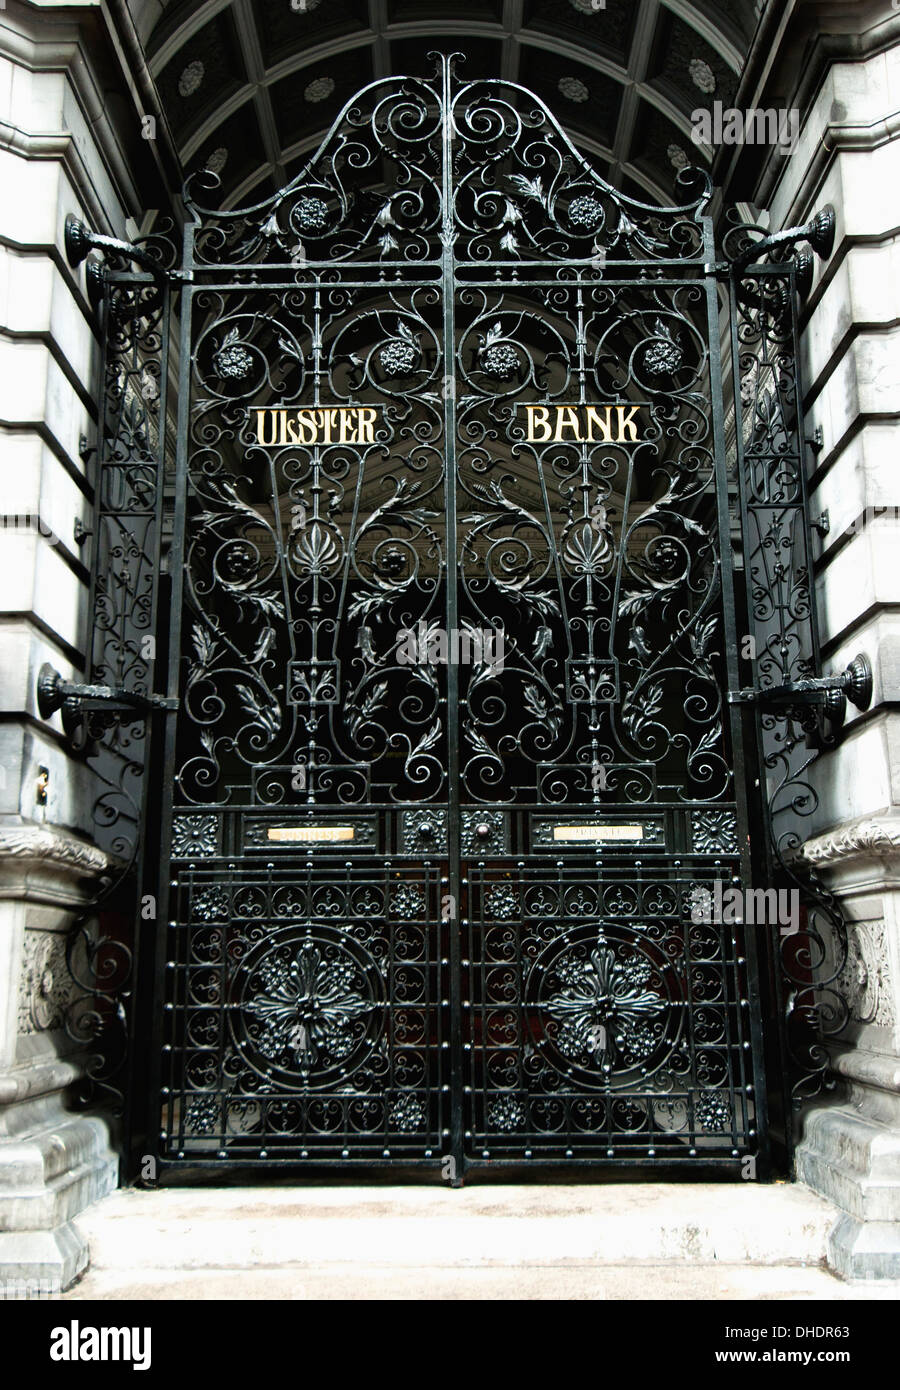 The Black Metal Gate To A Bank; Dublin, Ireland - Stock Image